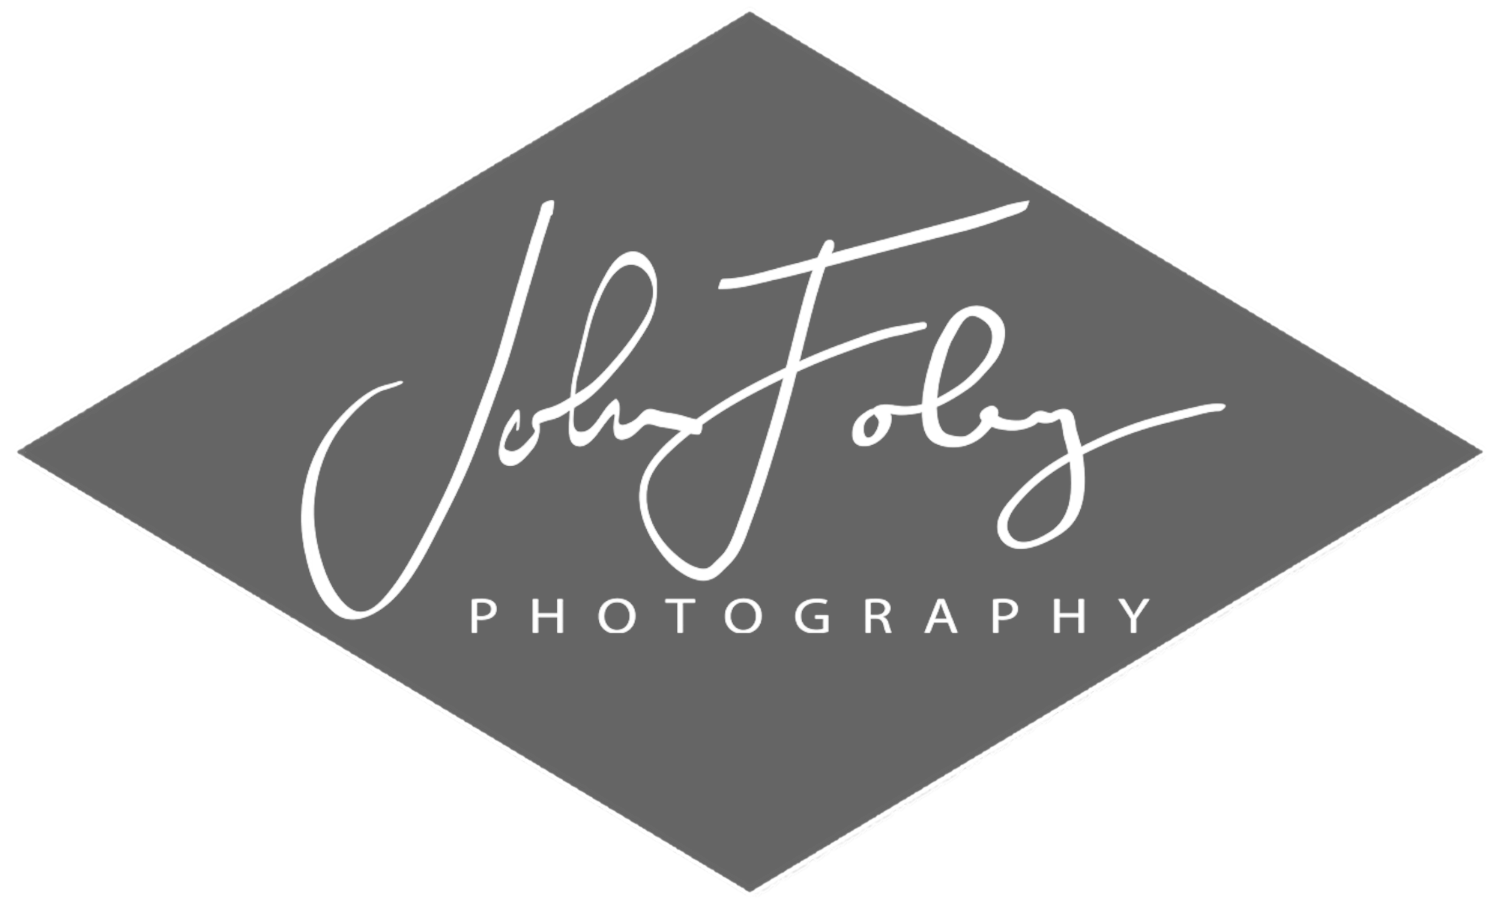 John Foley Photography - Chicago Wedding Photographer